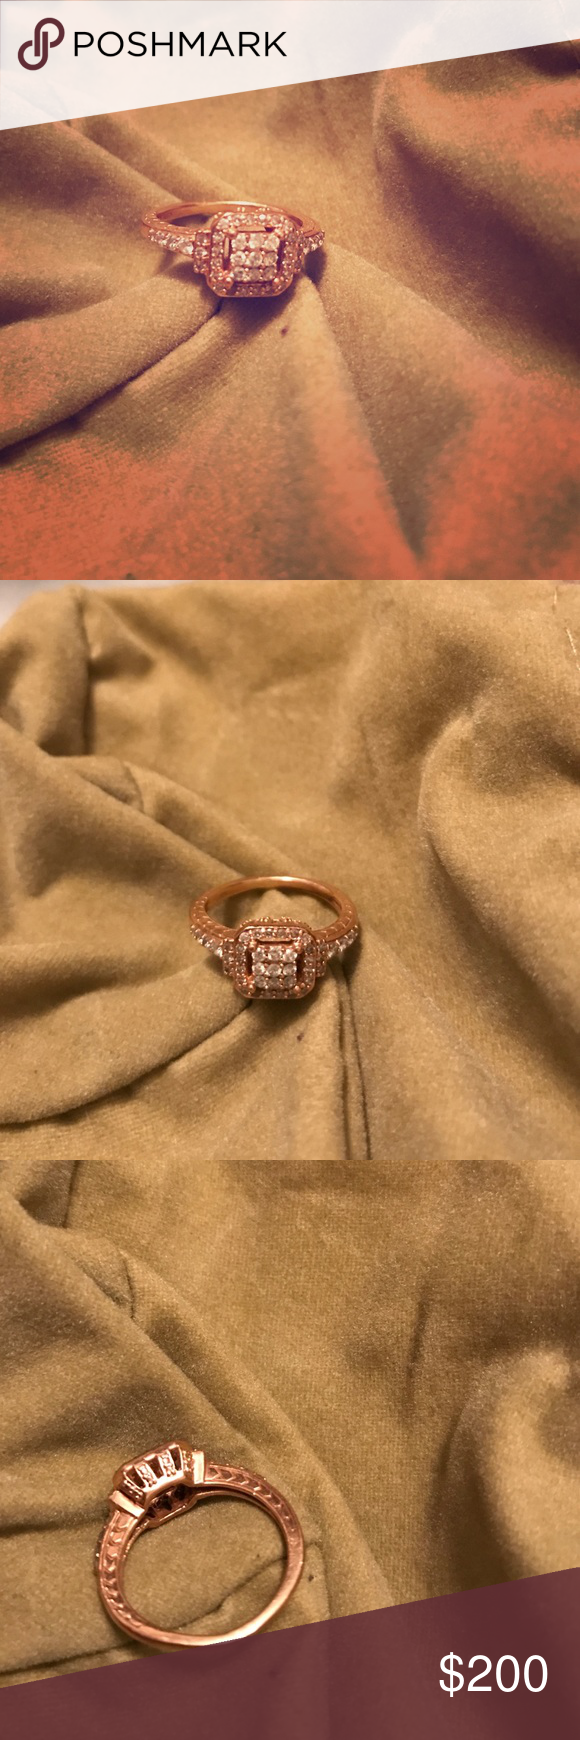 Rose gold diamond ring This rose gold and diamond ring is from Kay jewelers and is a size seven. Worn once. Perfect condition Kay Jewelers Jewelry Rings